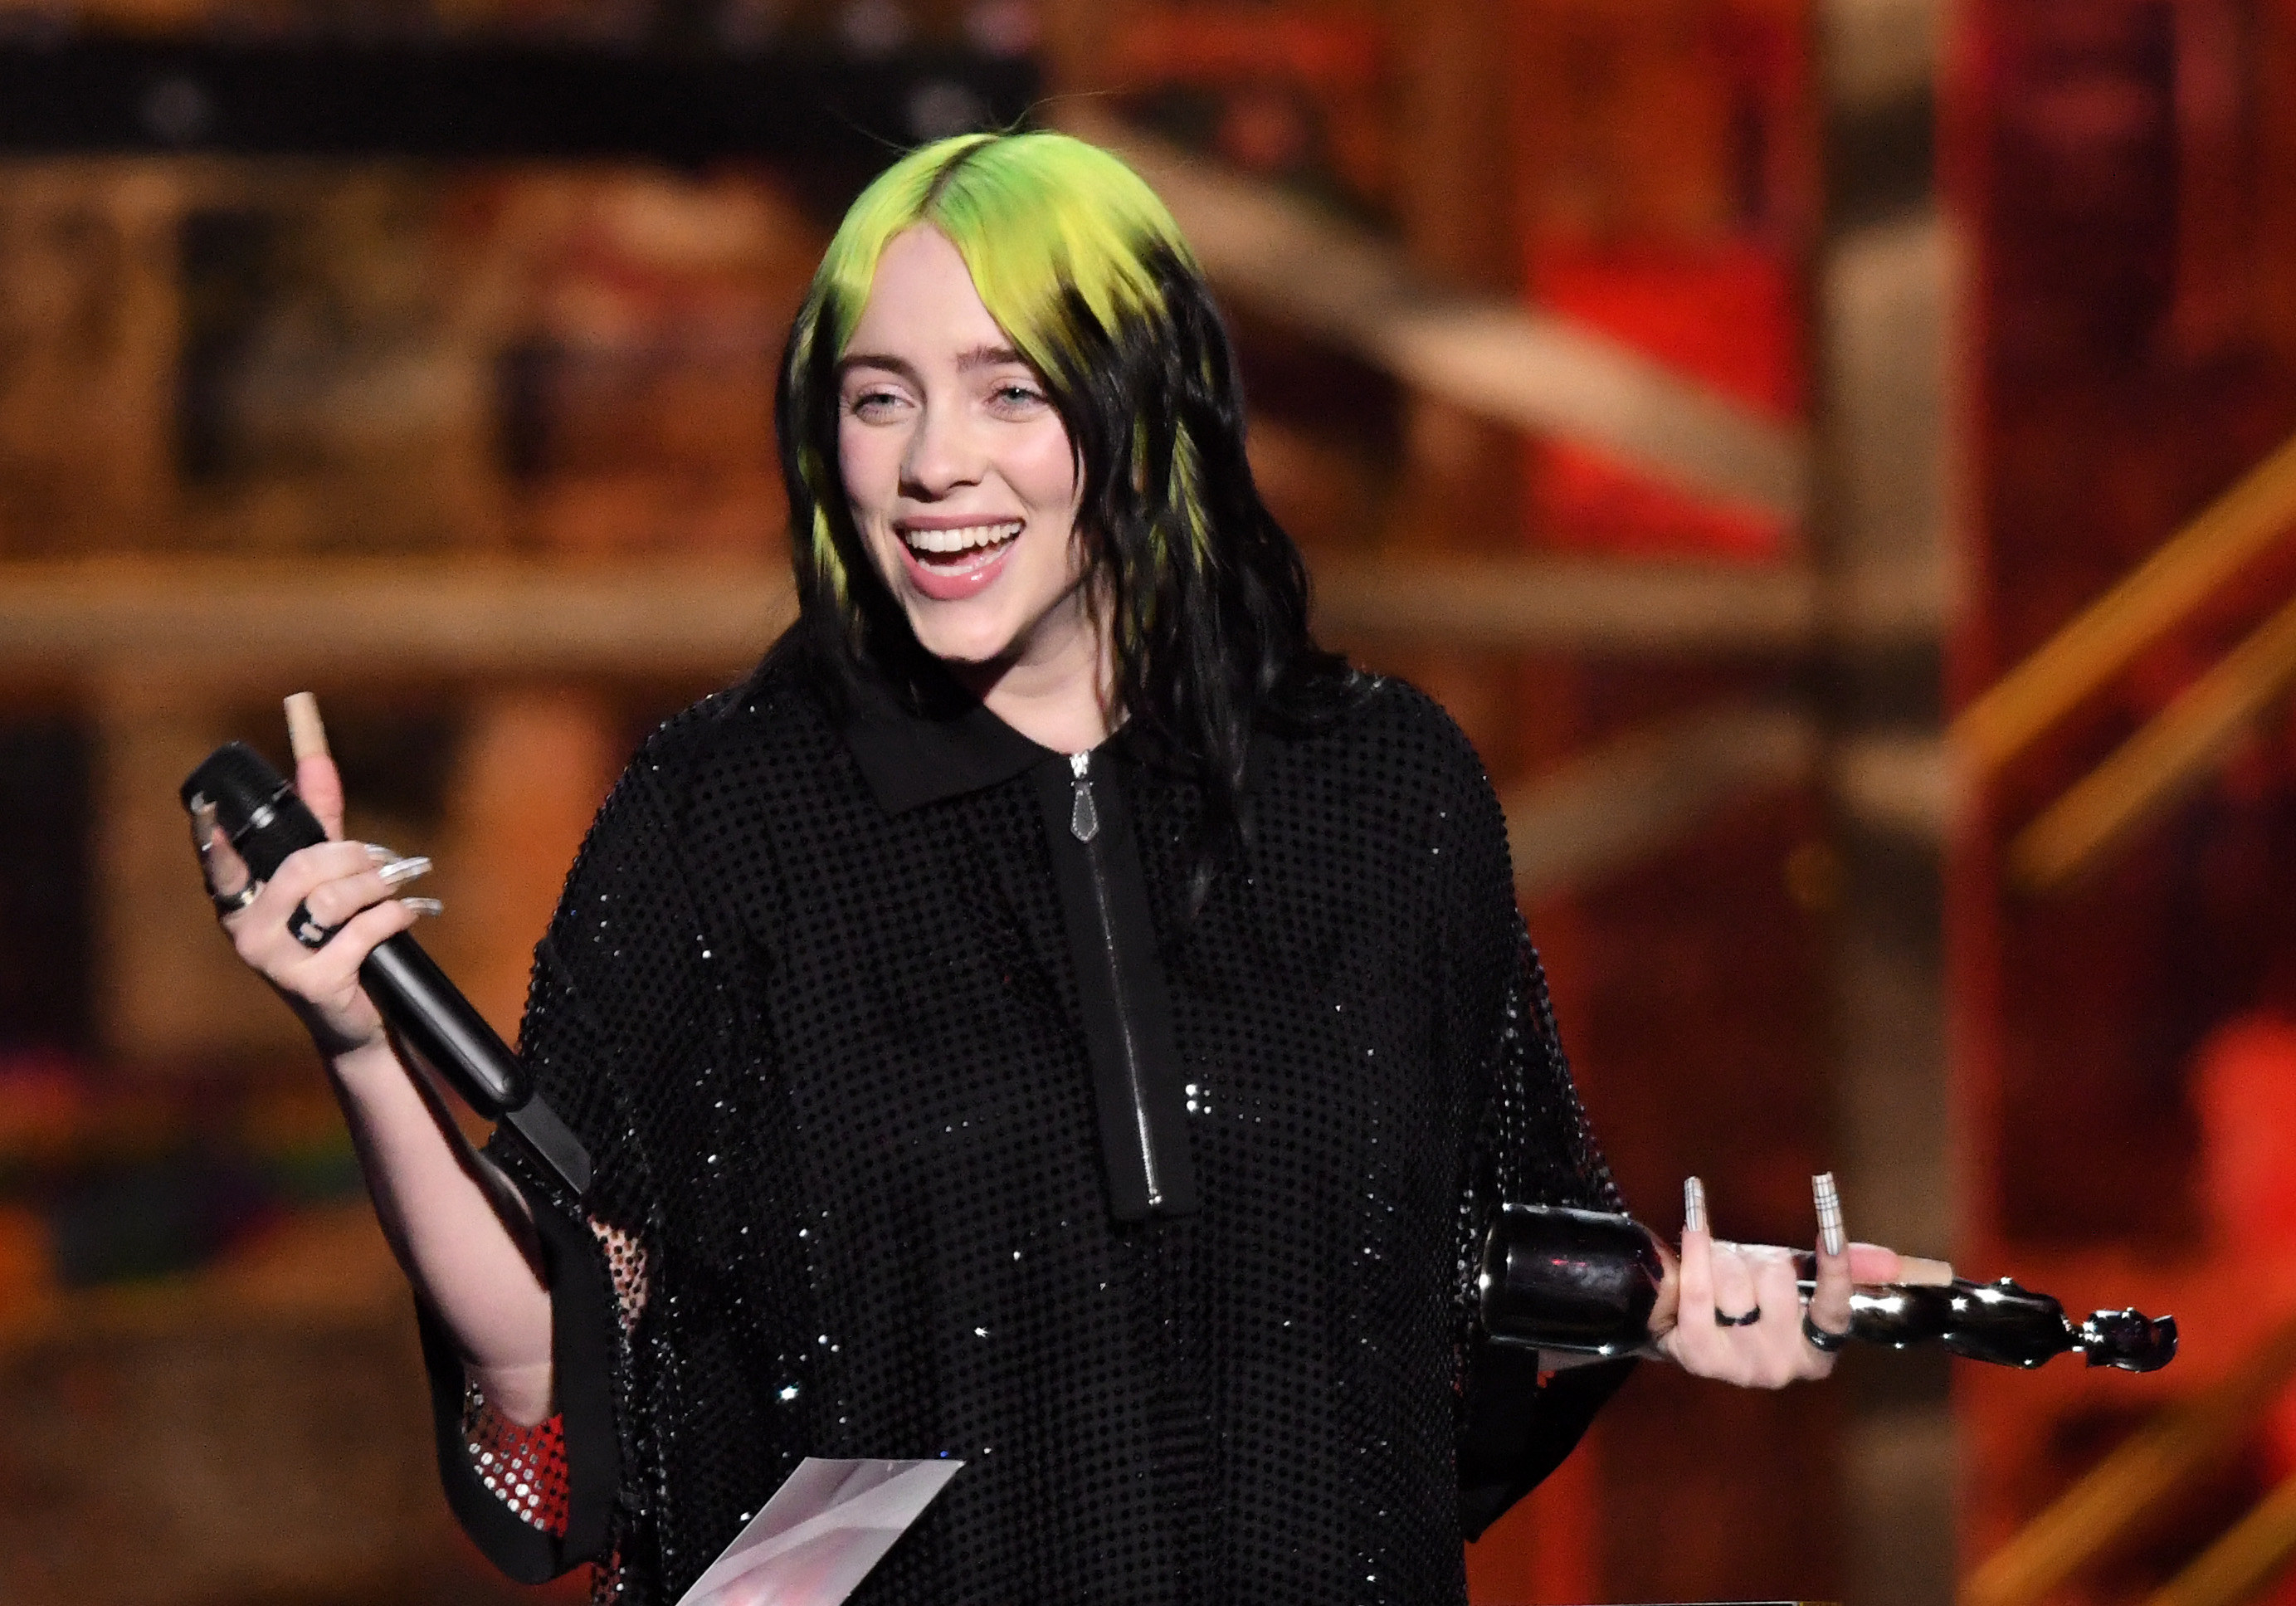 Billie Eilish smiling, holding a microphone and an award